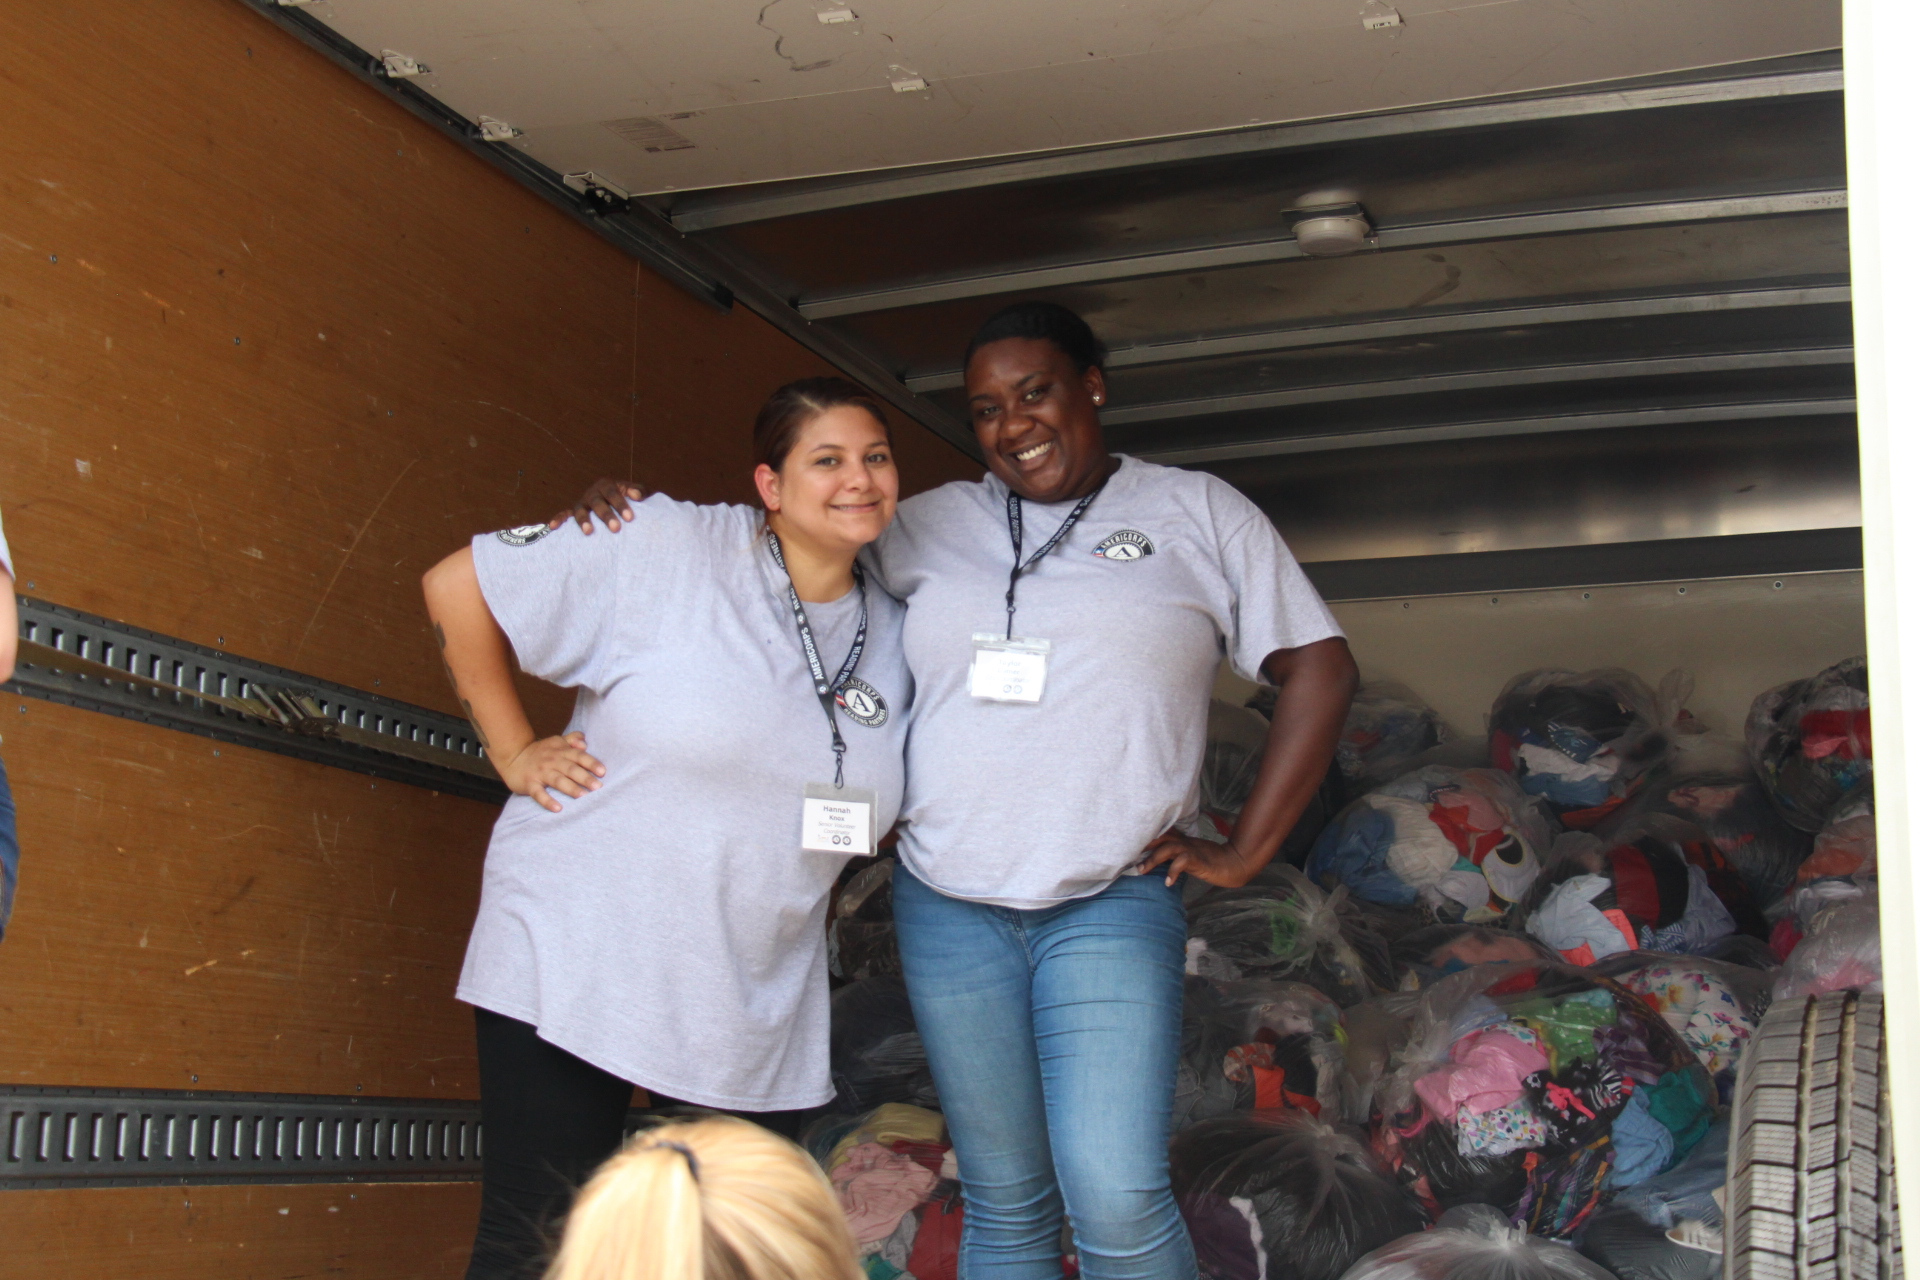 AmeriCorps members proud to serve